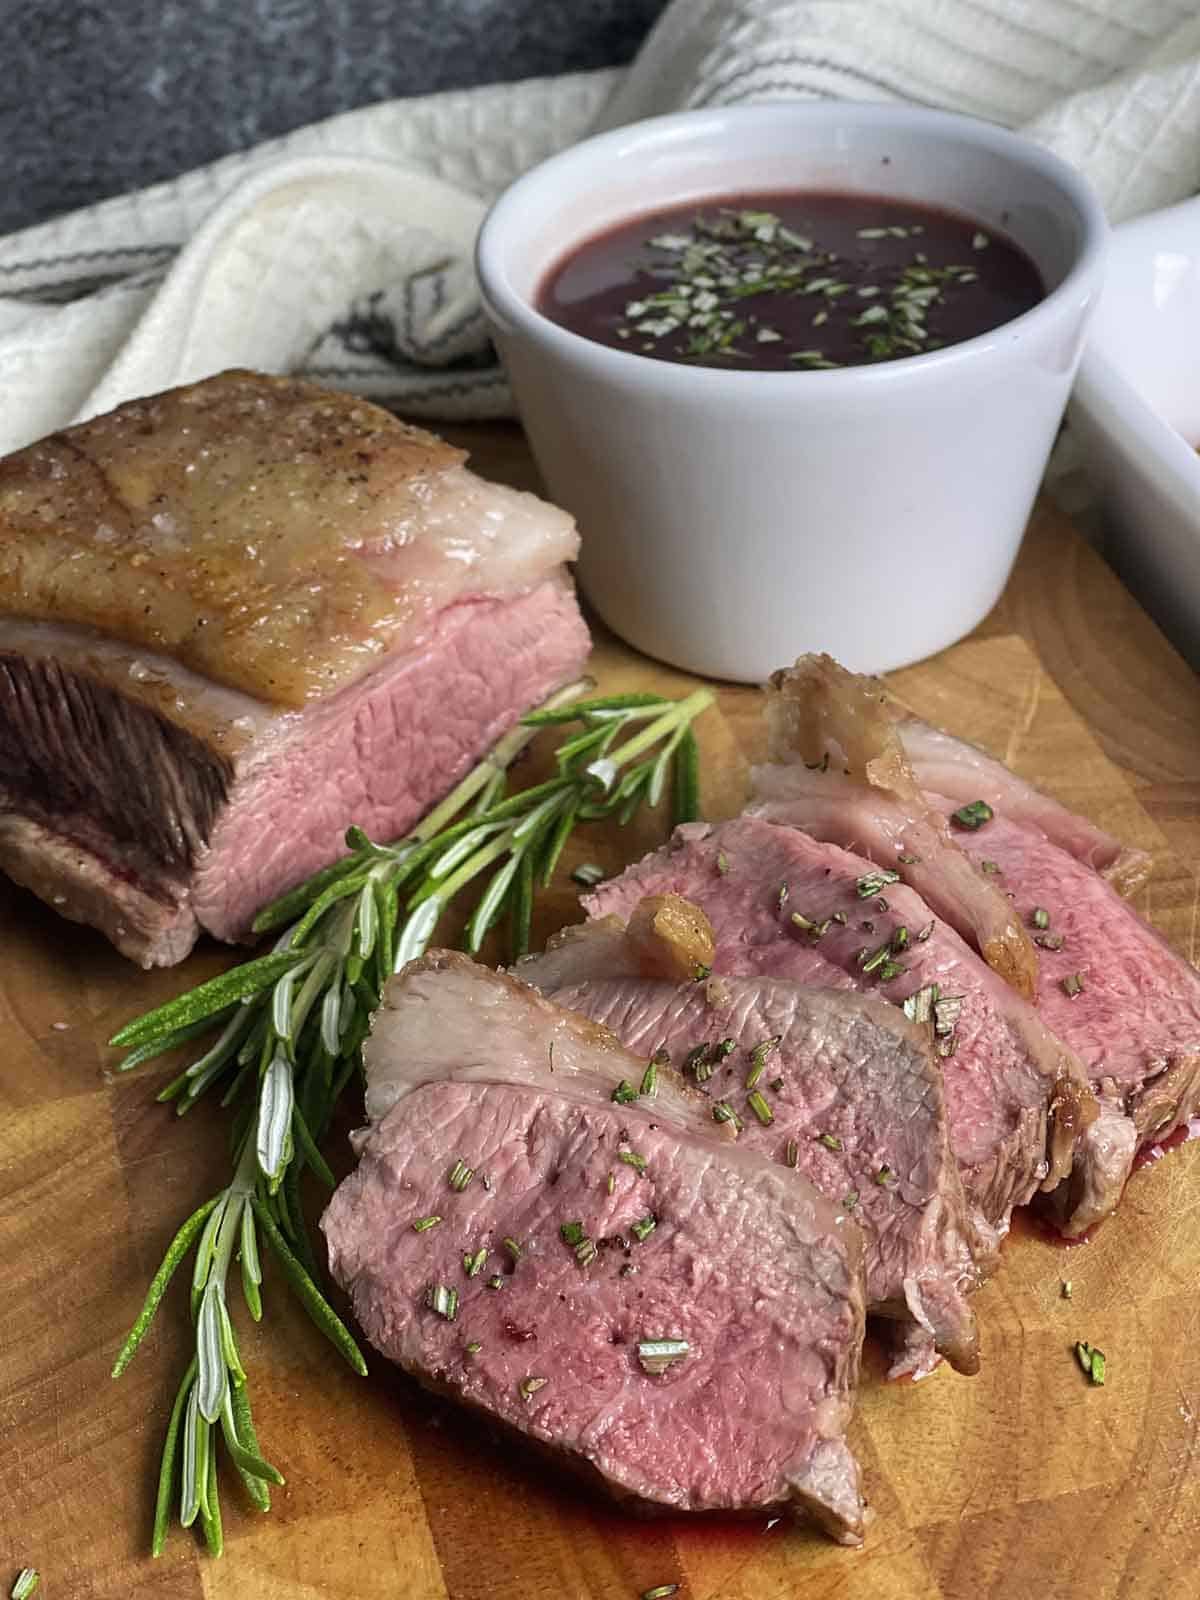 slices of cannon of lamb with a redcurrant sauce in a pot.